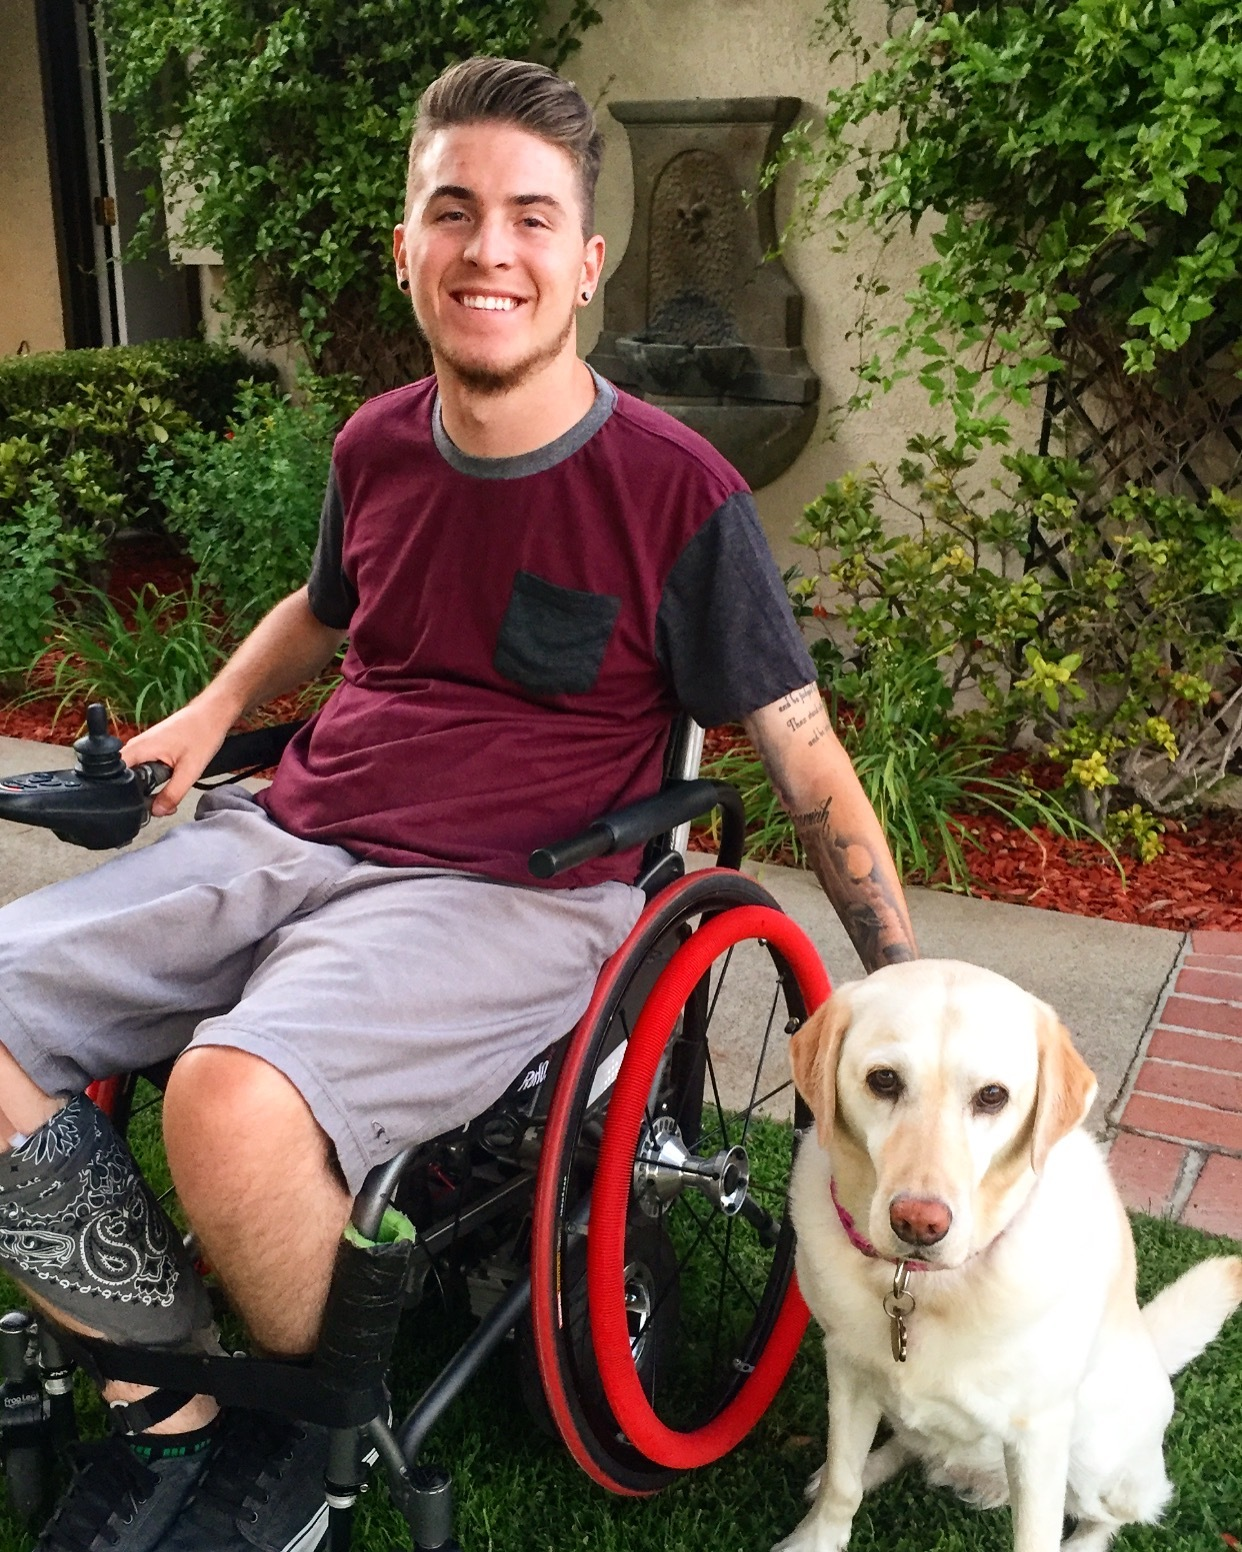 Zack outside in his wheelchair with his dog